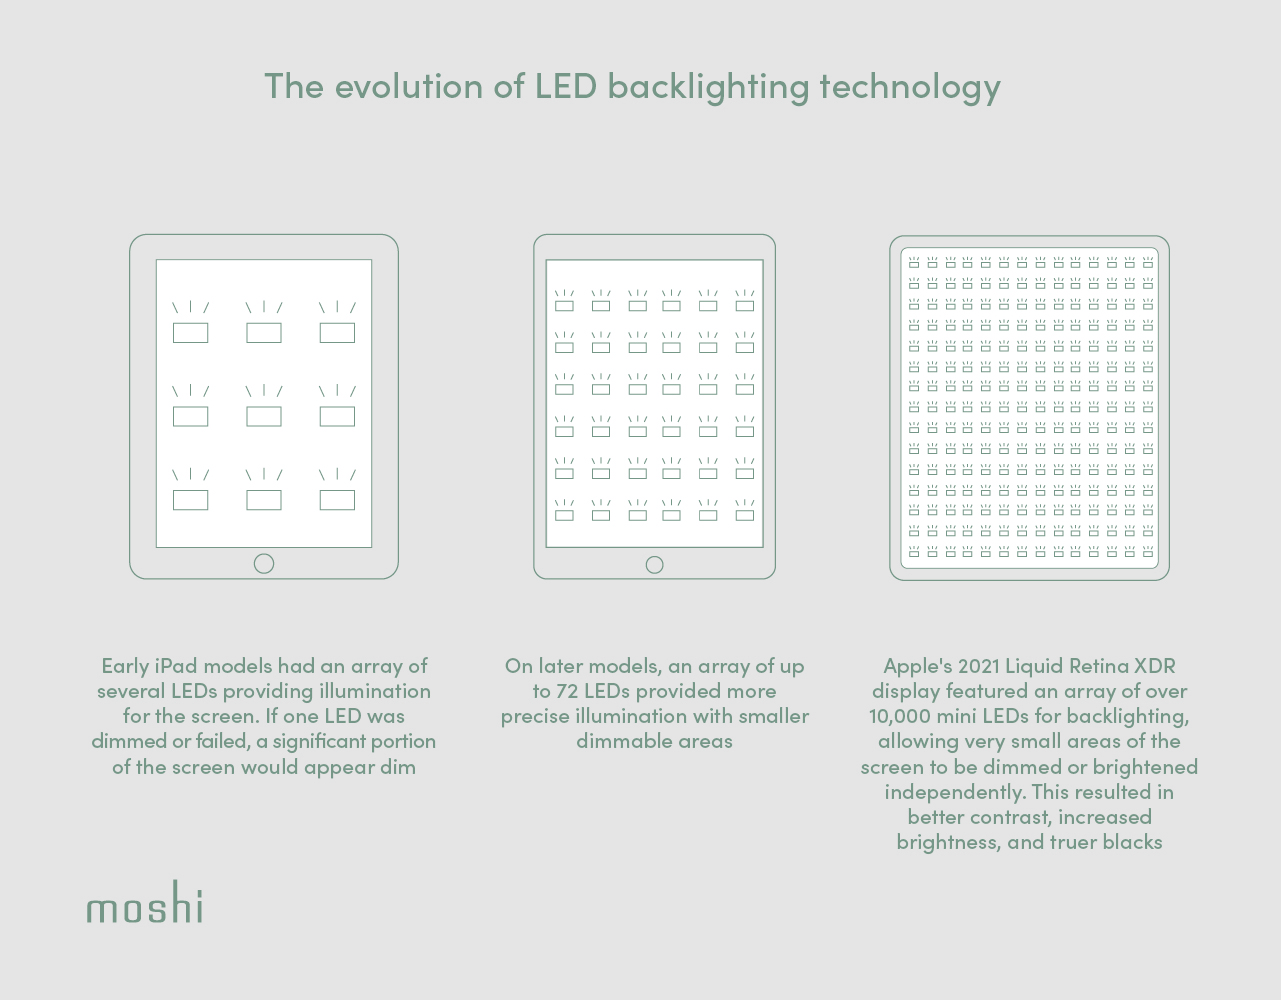 An infographic showing the progression of LED backlighting in iPad devices